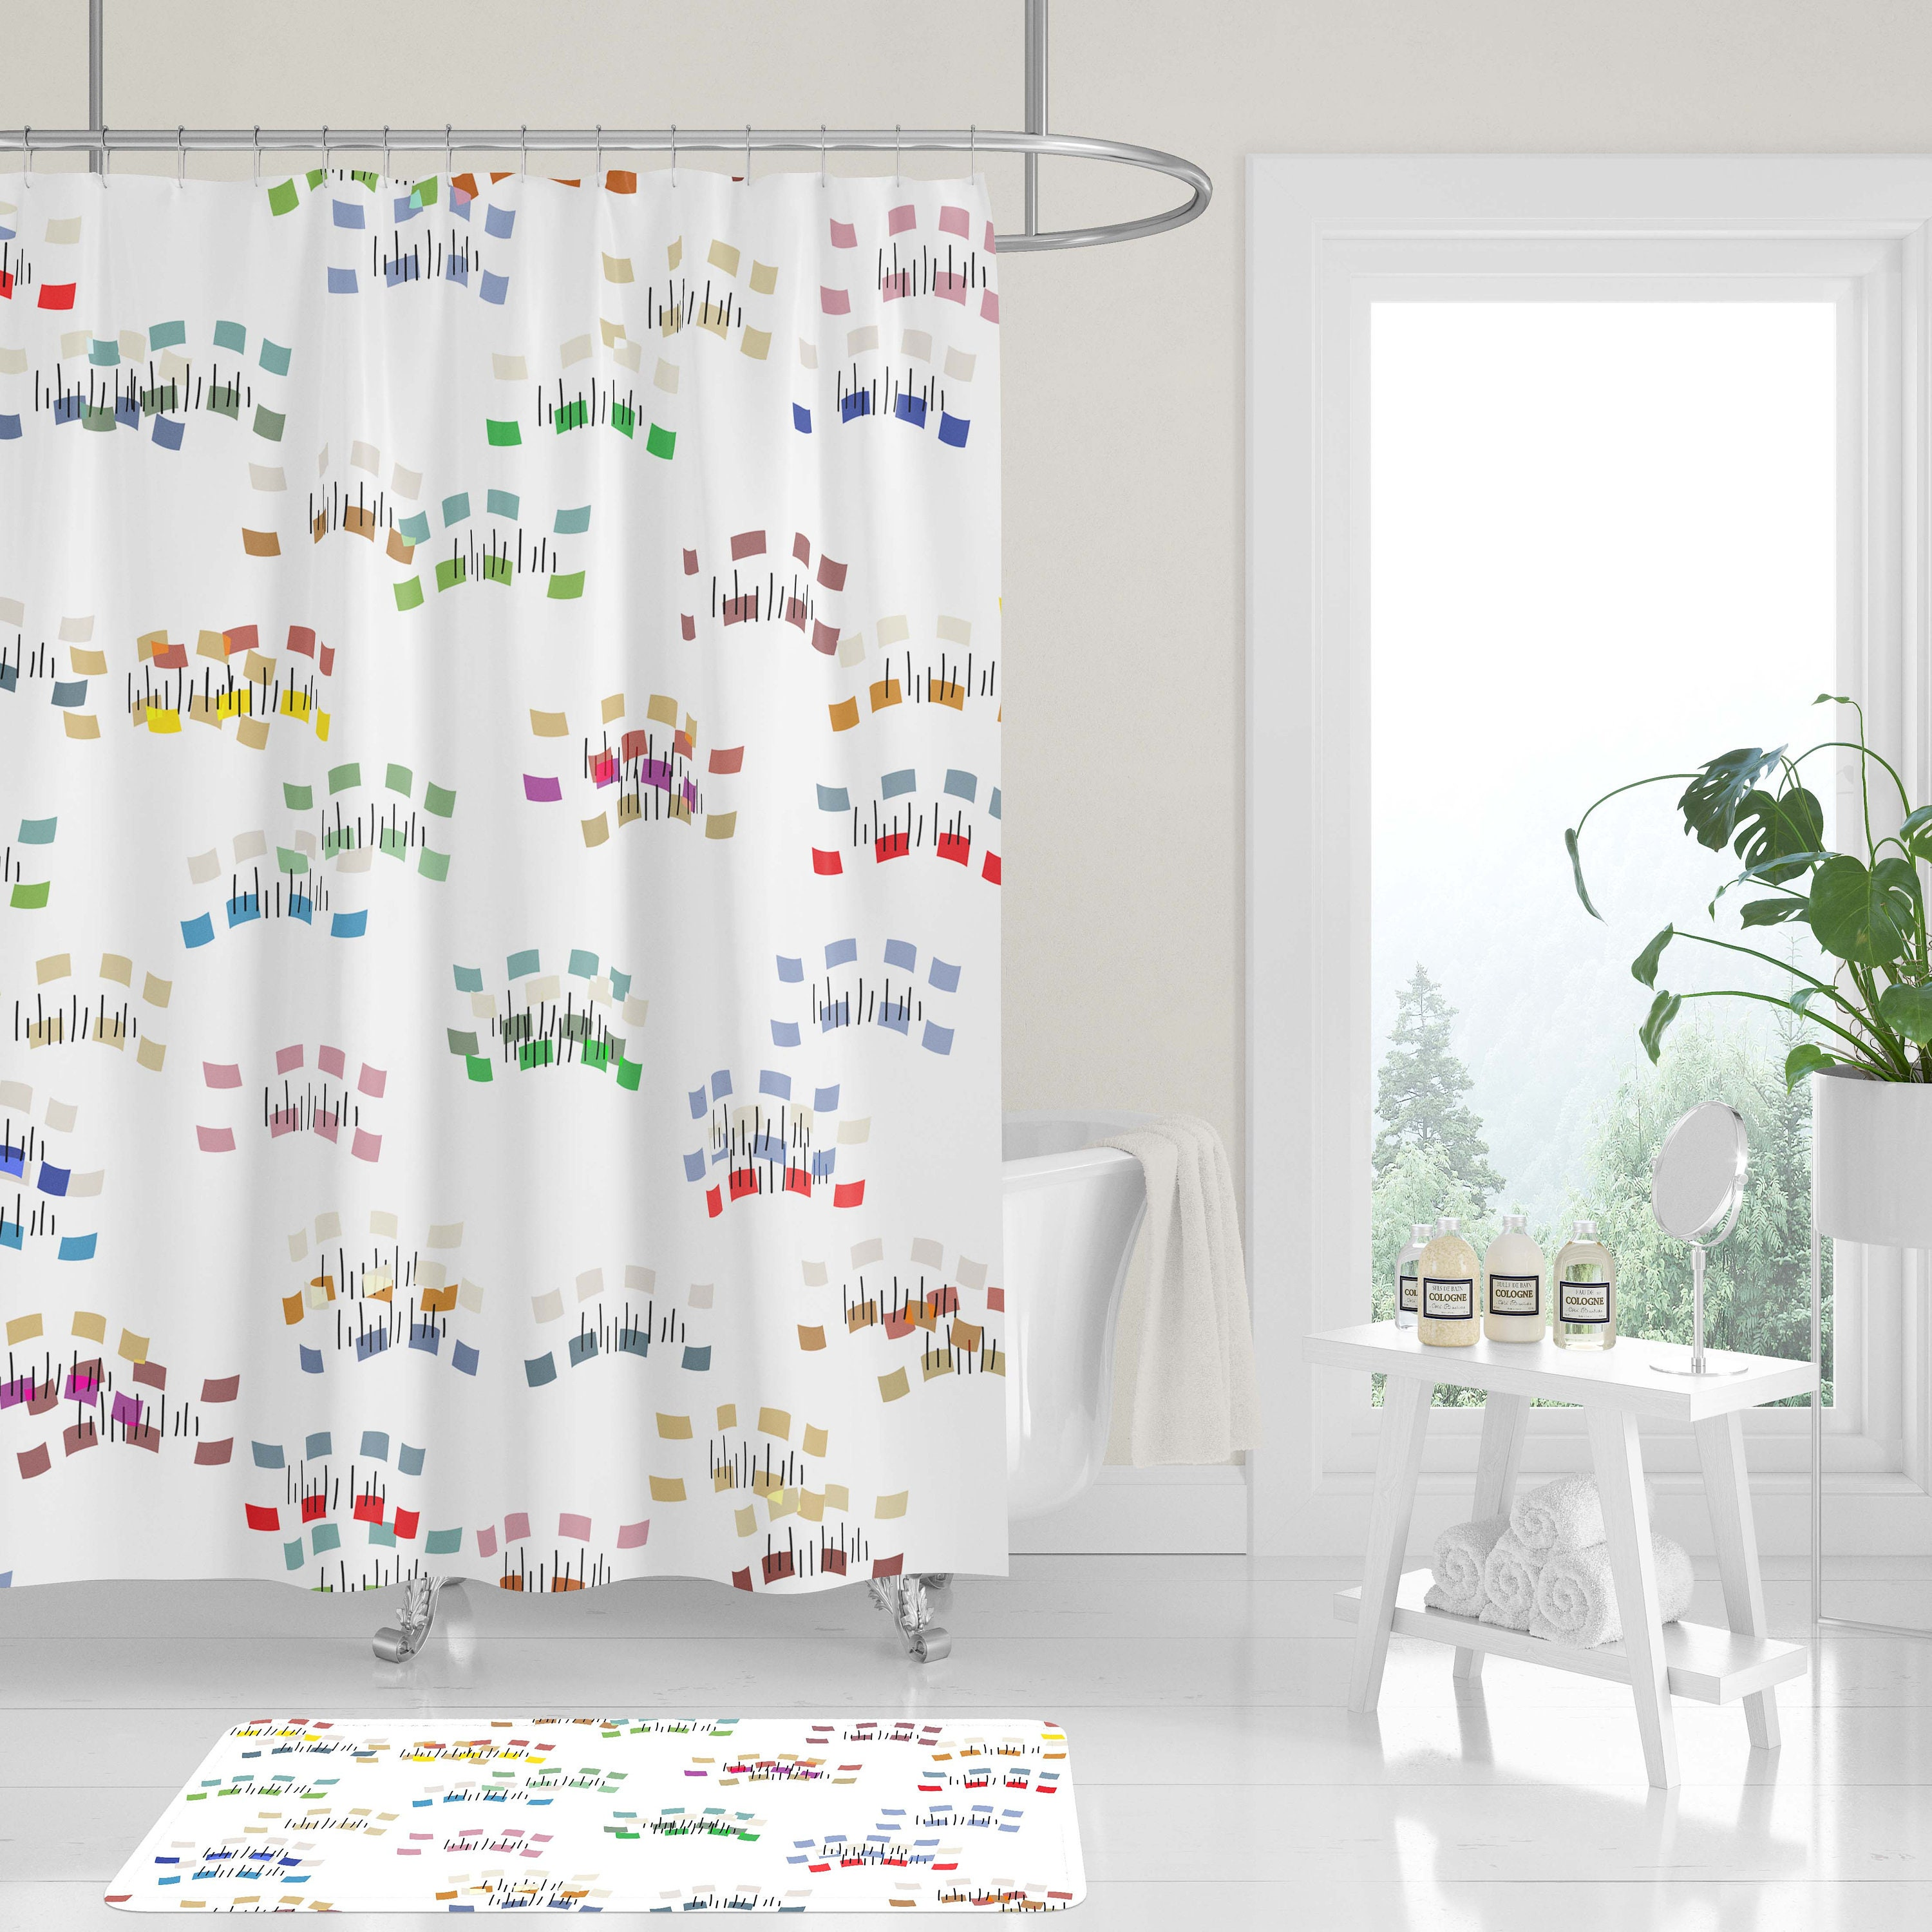 New Premium Fabric Shower Curtain Fun Modern Colorful Abstract Matisse Cutouts Whimsical Wavy Dash Neutral White Background Machine Washable